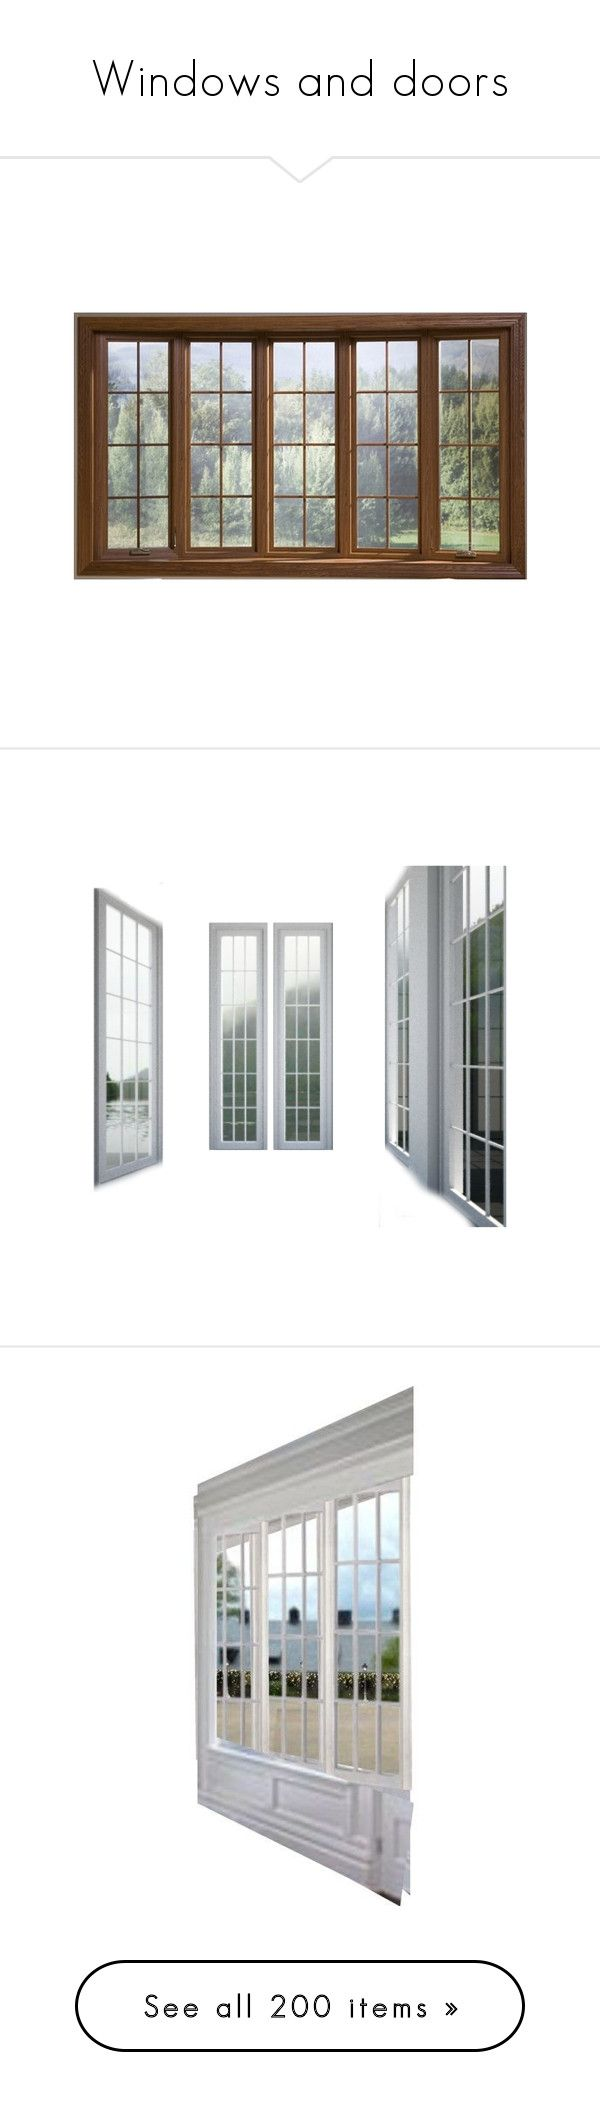 """""""Windows and doors"""" by colonae ❤ liked on Polyvore featuring home, home decor, window treatments, curtains, windows, outdoor home decor, outdoor window coverings, outside curtains, bow window curtains and outdoor window curtains"""